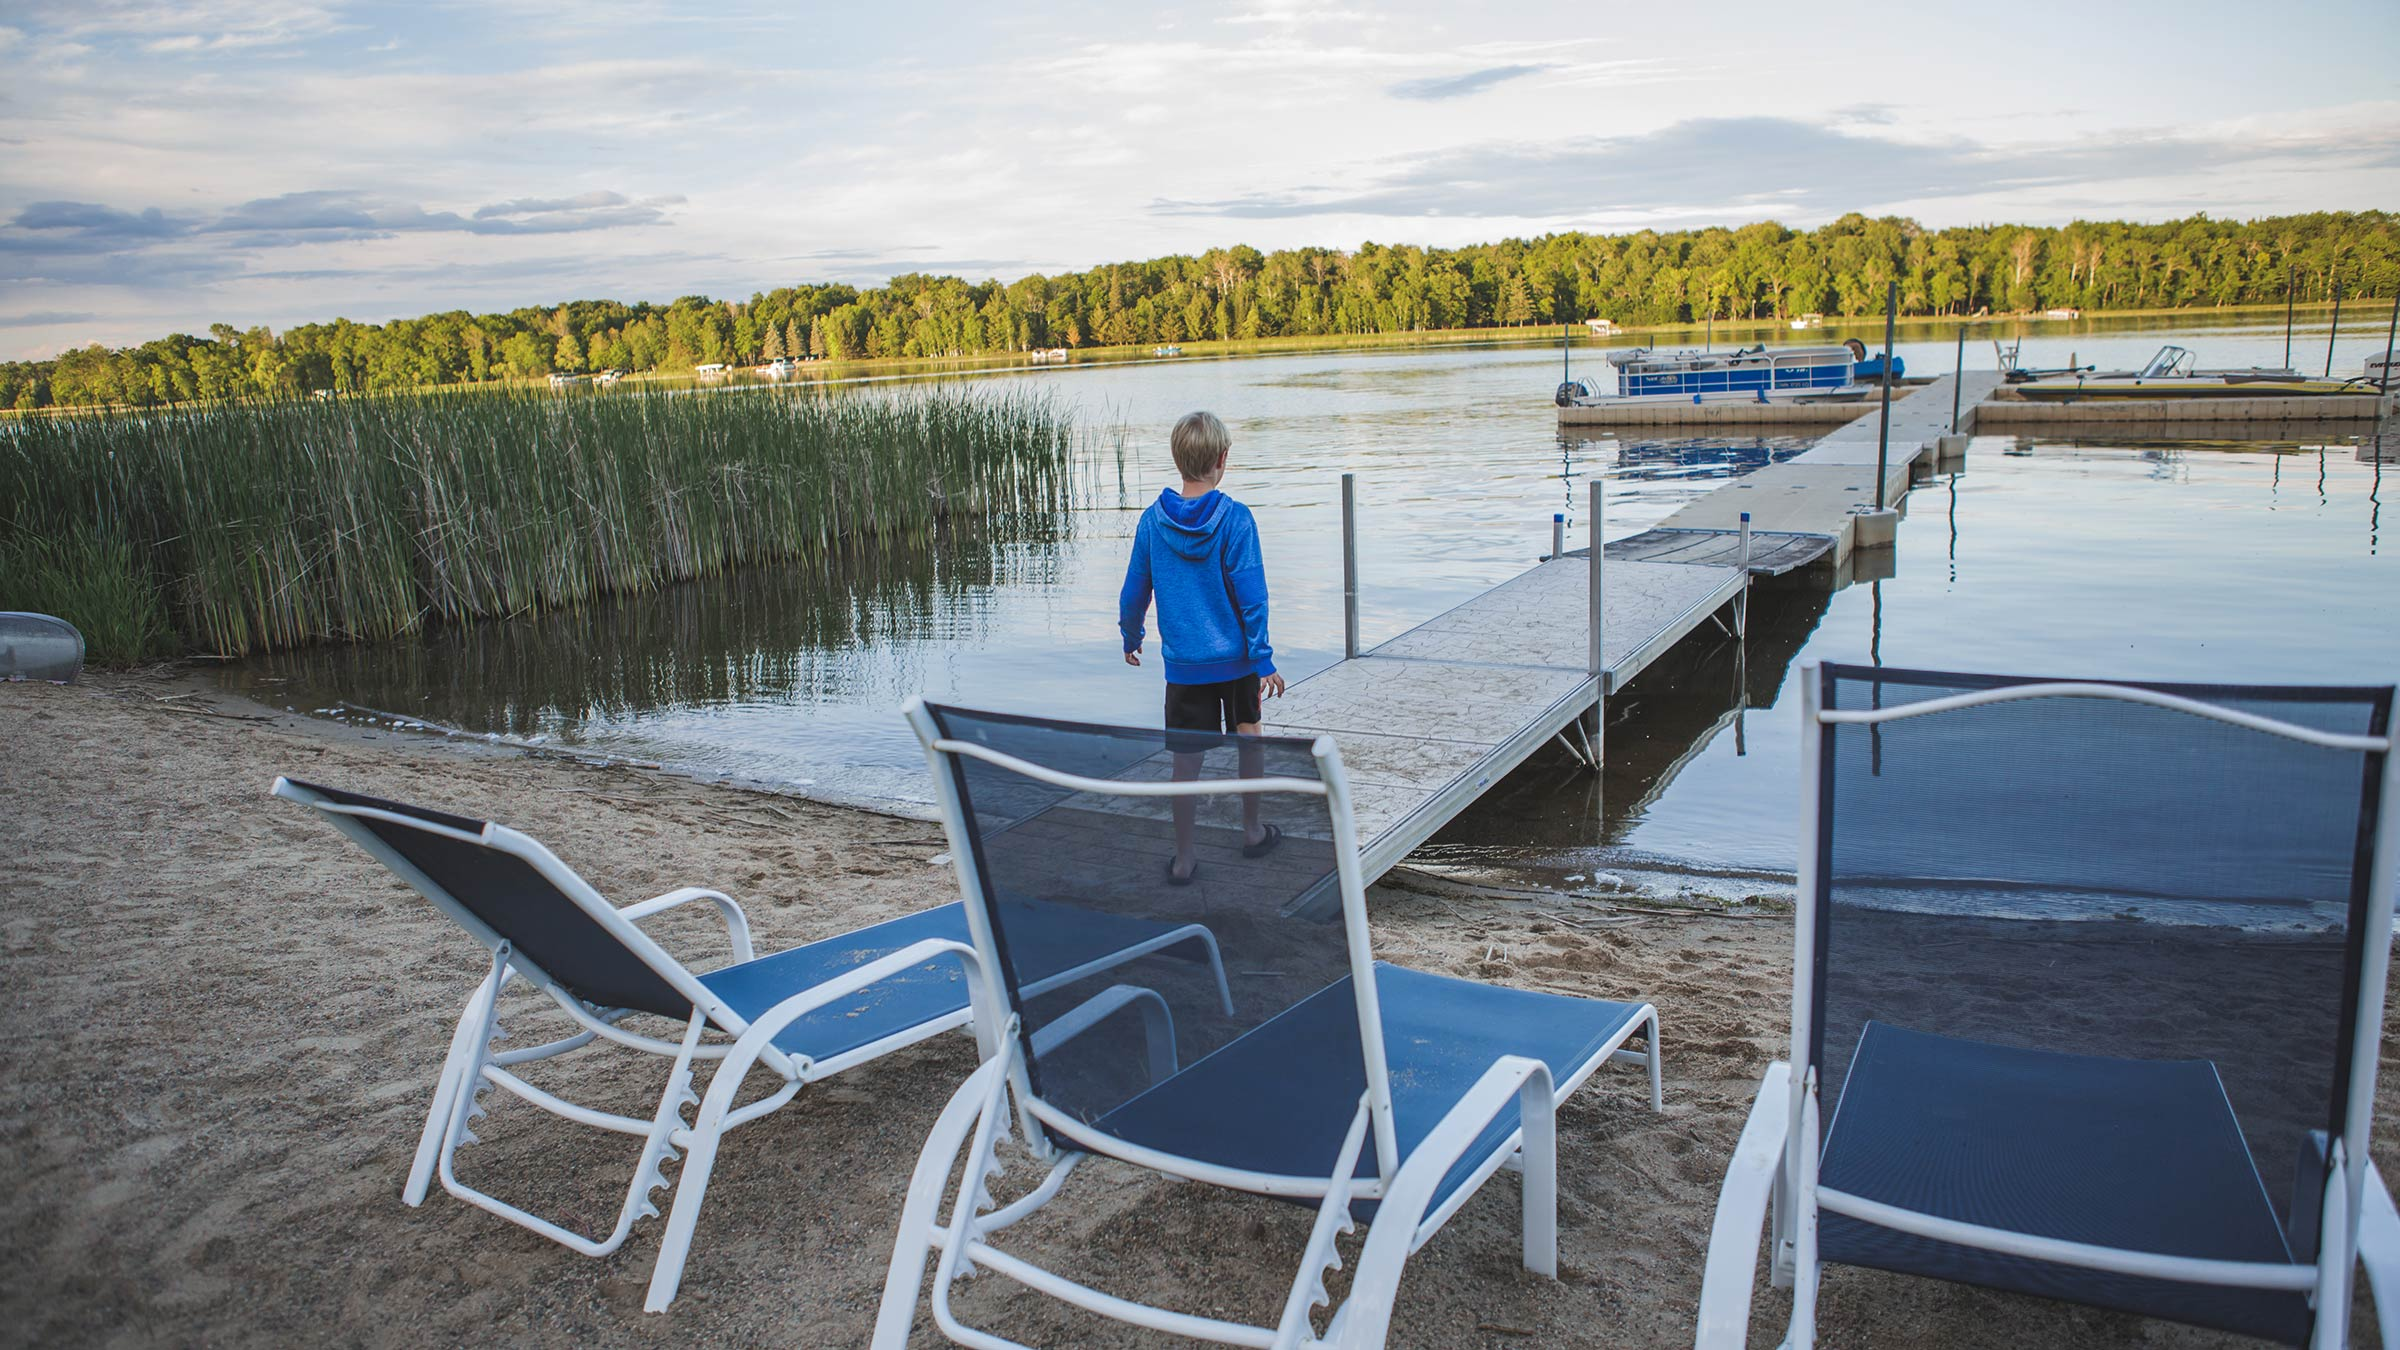 Minnesota hospitality firms struggling, but 10,000 lakes helping some key image